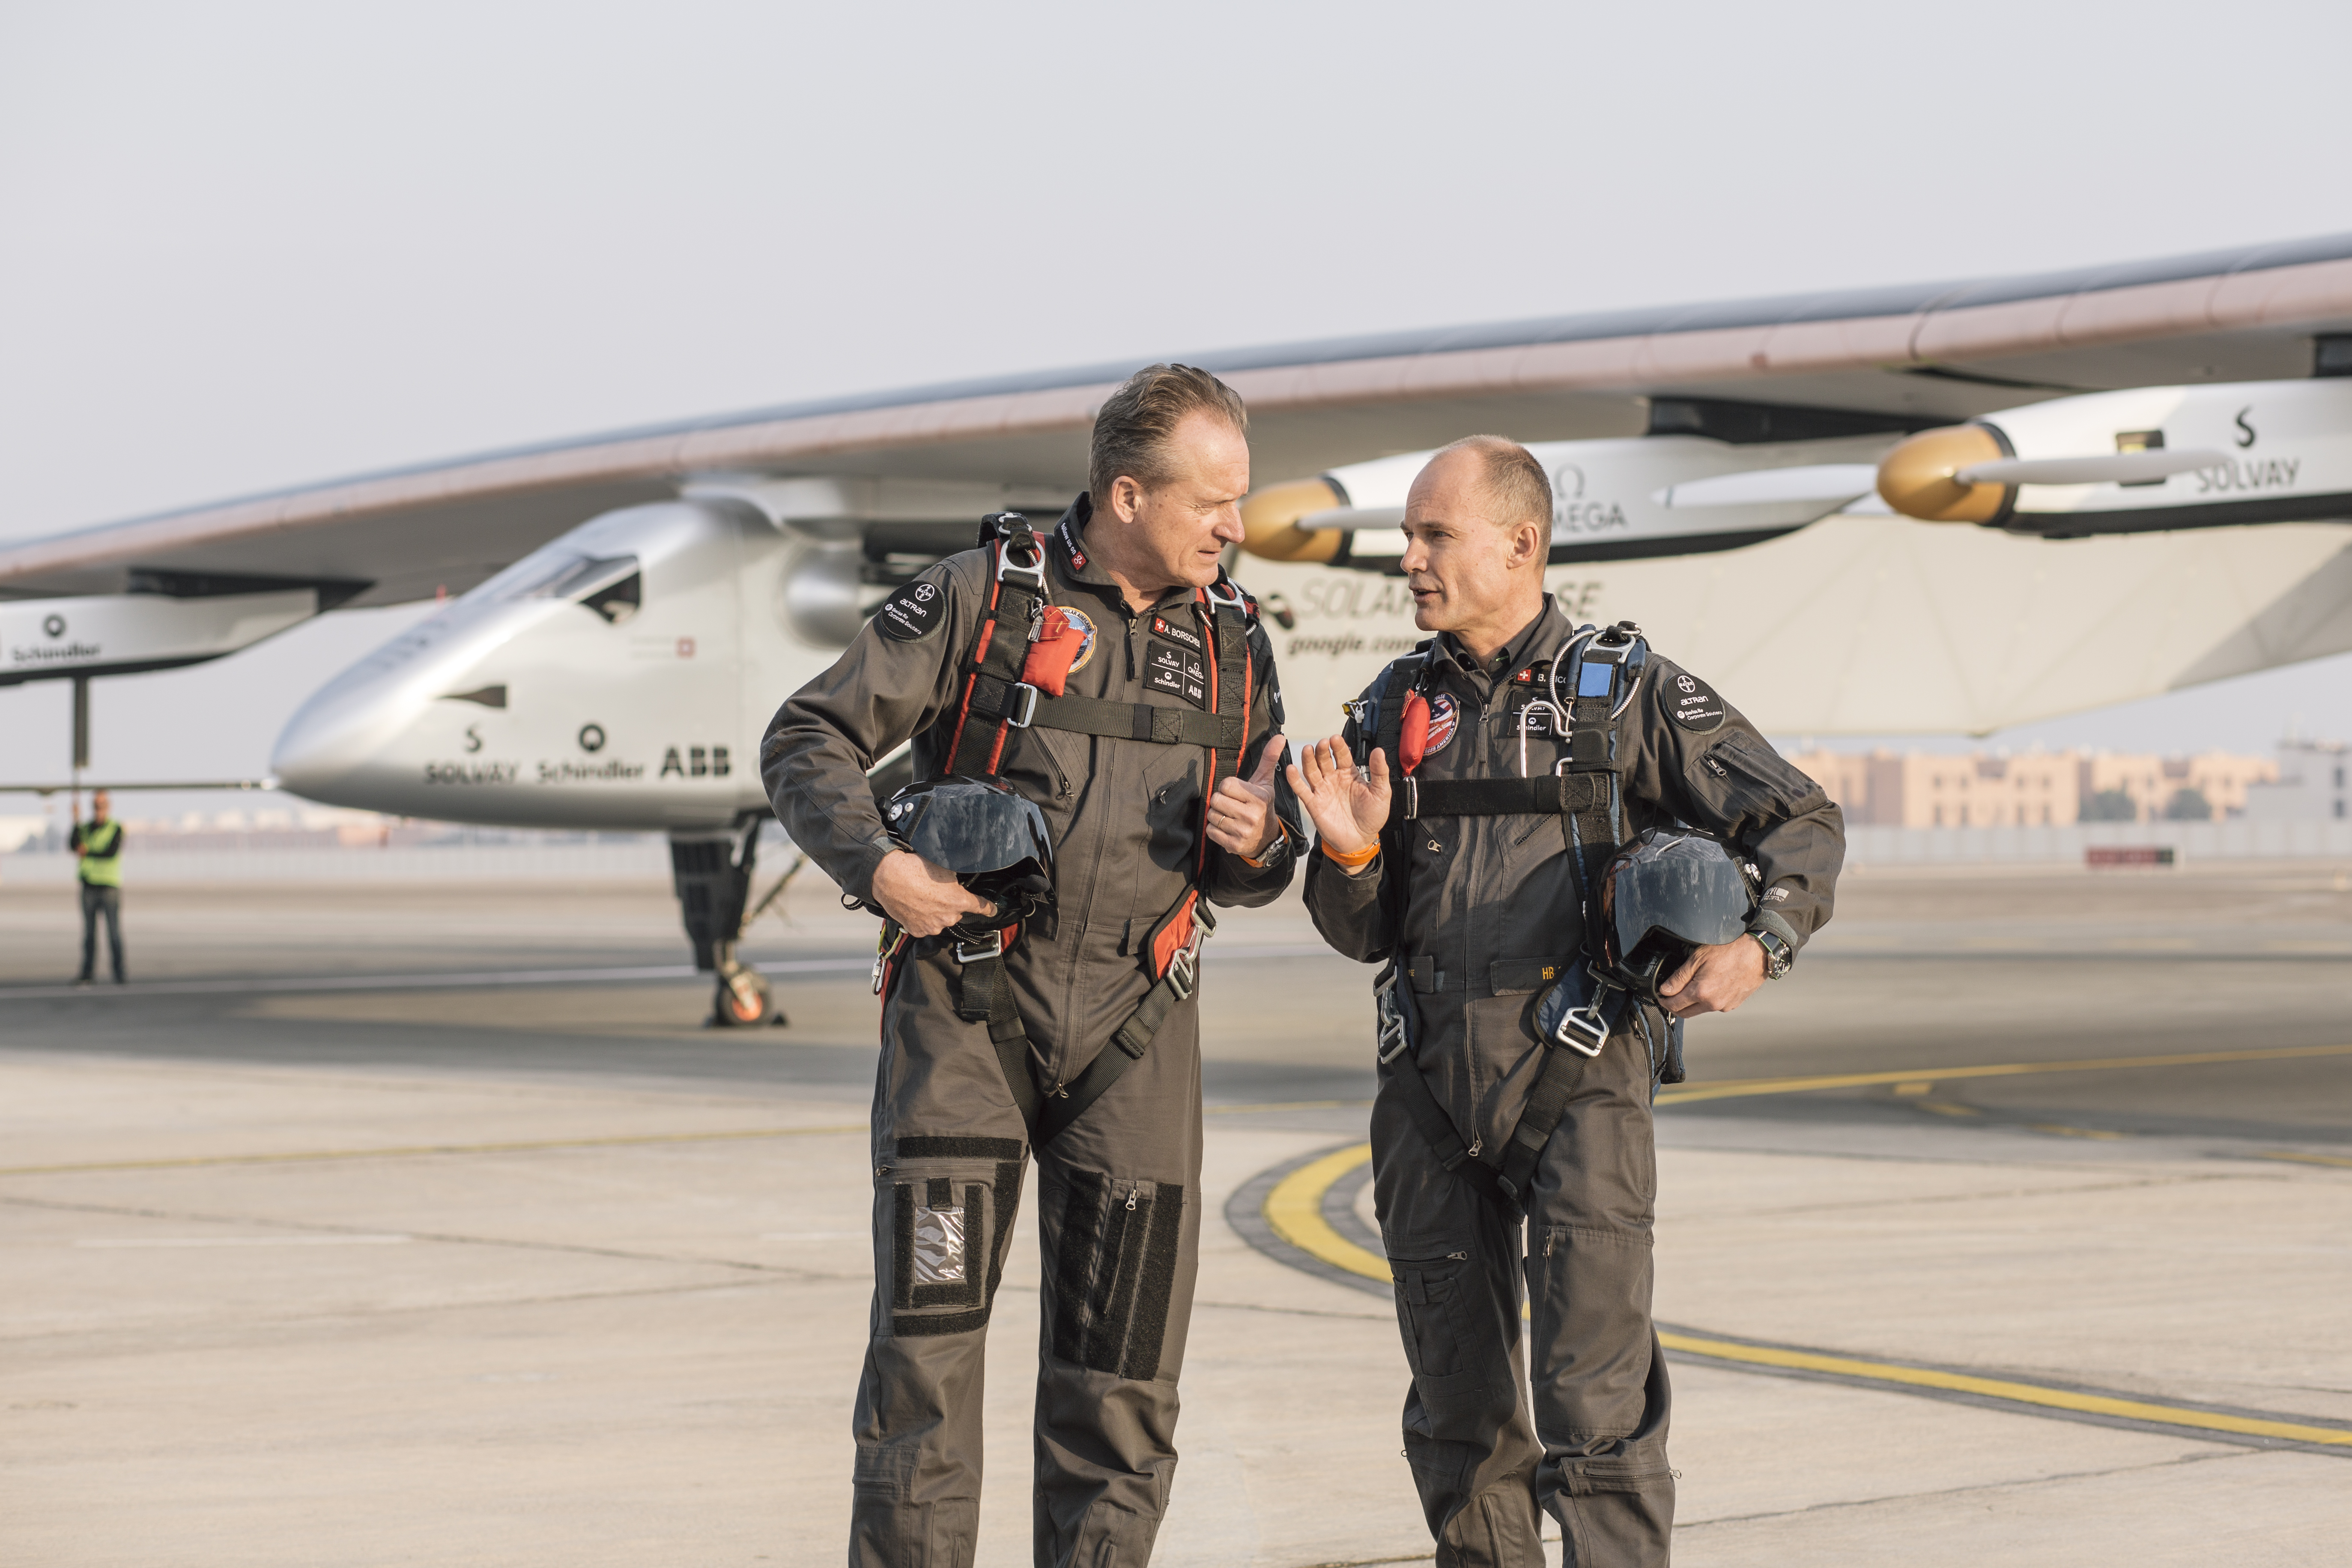 André Borschberg, left, and Bertrand Piccard undertake preparation flights with Solar Impulse II in Abu Dhabi in January                                          Abu Dhabi, UAE: After the succesful unloading of Solar Impulse 2 from the cargo, today the Plane is being reassembled in order to get ready for the test flights. The attempt to make the first round-the-world solar-powered flight is scheduled to start in March 2015 from Abu Dhabi. Solar Impulse will fly, in order, over the Arabian Sea, India, Myanmar, China, the Pacific Ocean, the United States, the Atlantic Ocean and Southern Europe or Northern Africa before closing the loop by returning to the departure point. Landings will be made every few days to change pilots and organize public events for governments, schools and universities.